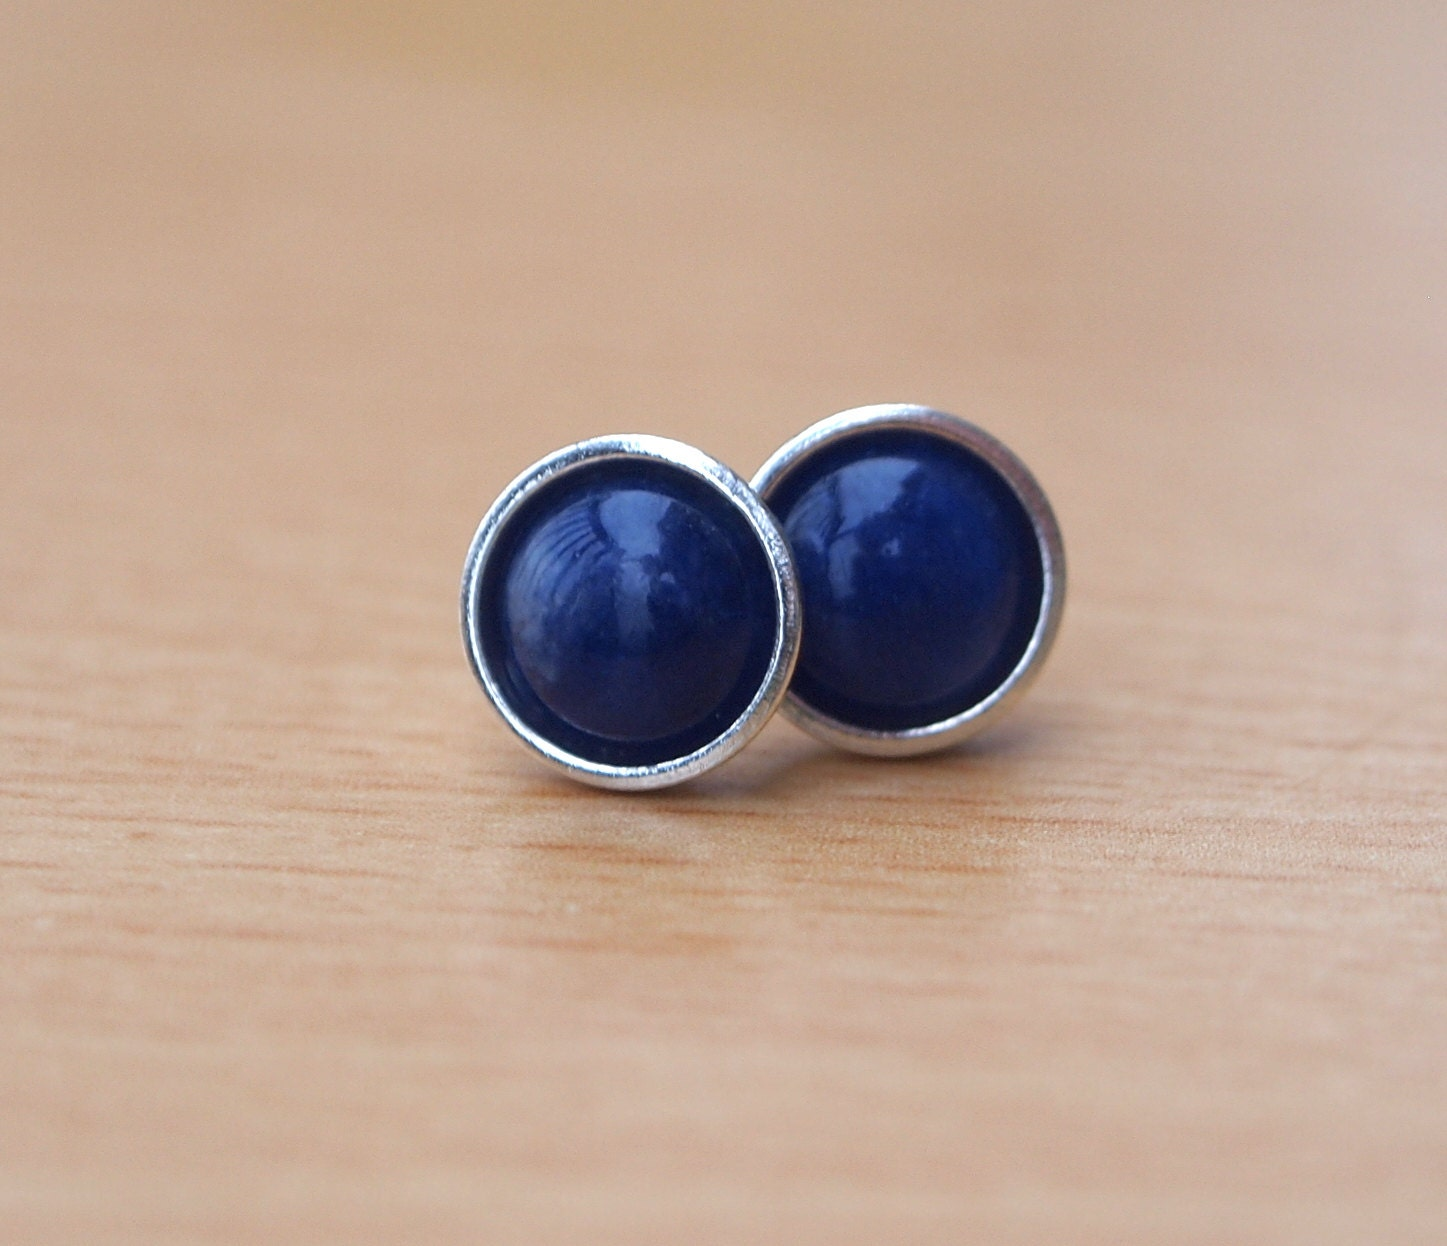 Small Blue Earrings: Blue Stud Earrings Sodalite Studs Small Round Unisex Earring